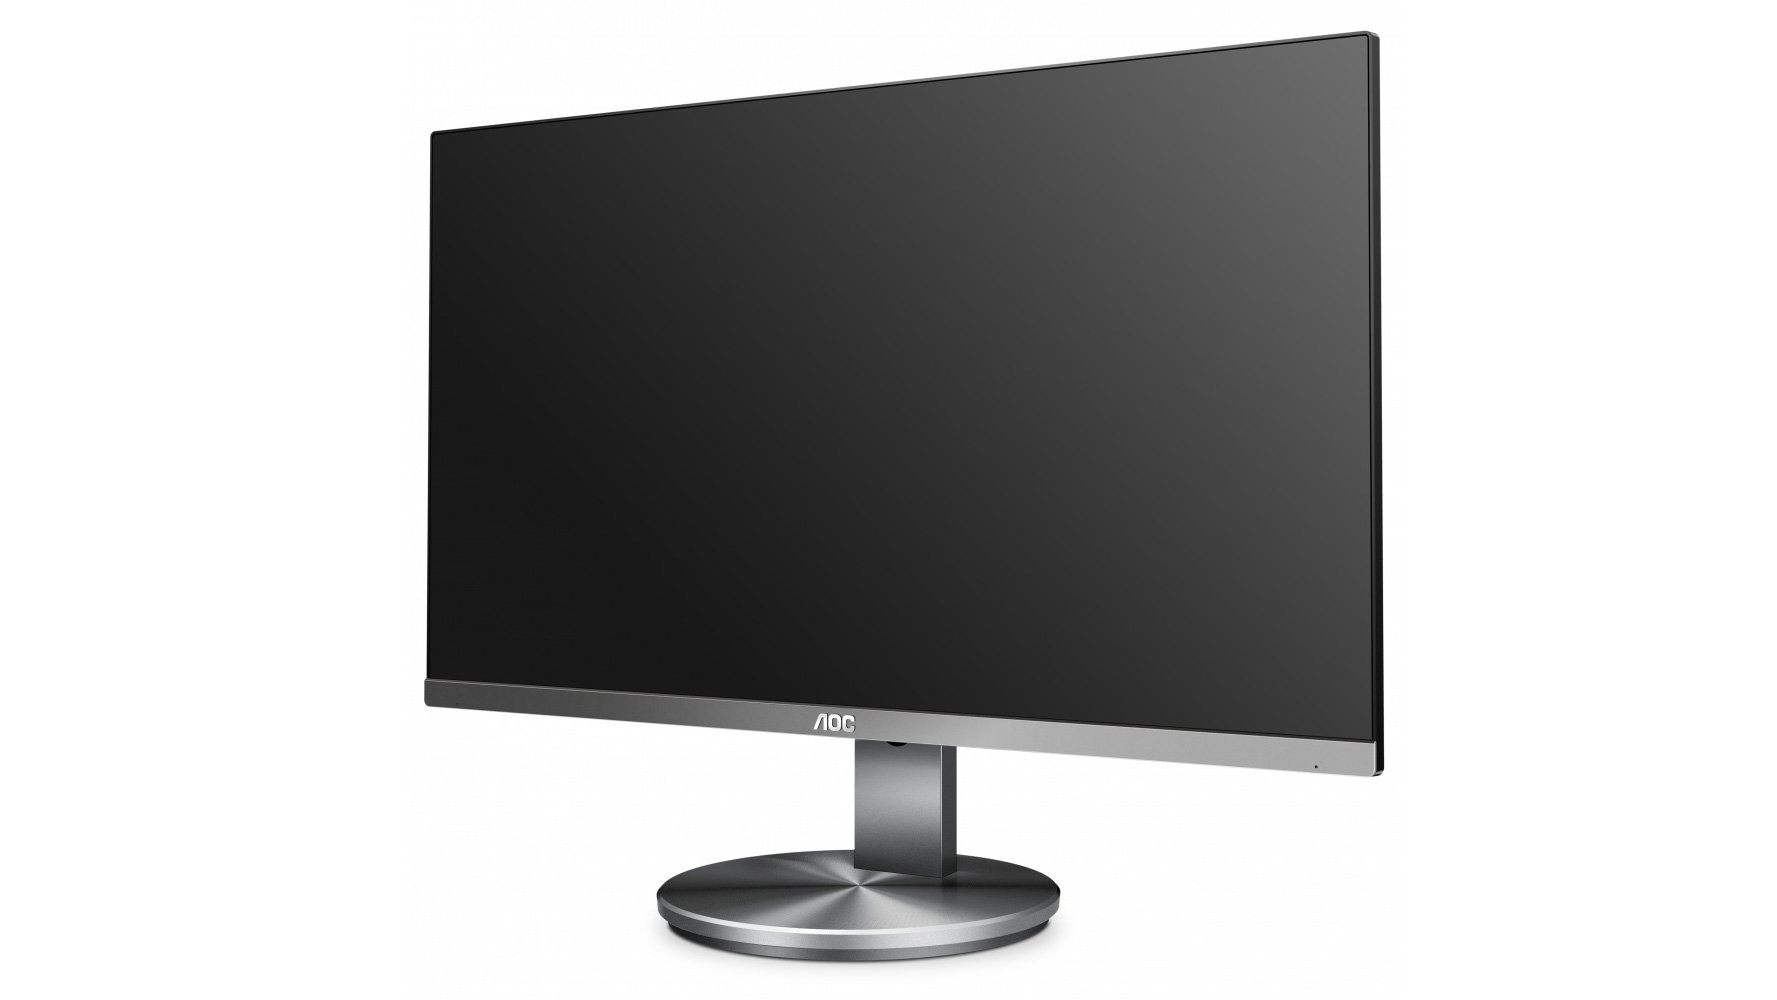 Best monitor 2019: The best budget, 5K, 4K, WQHD and 1080p monitors